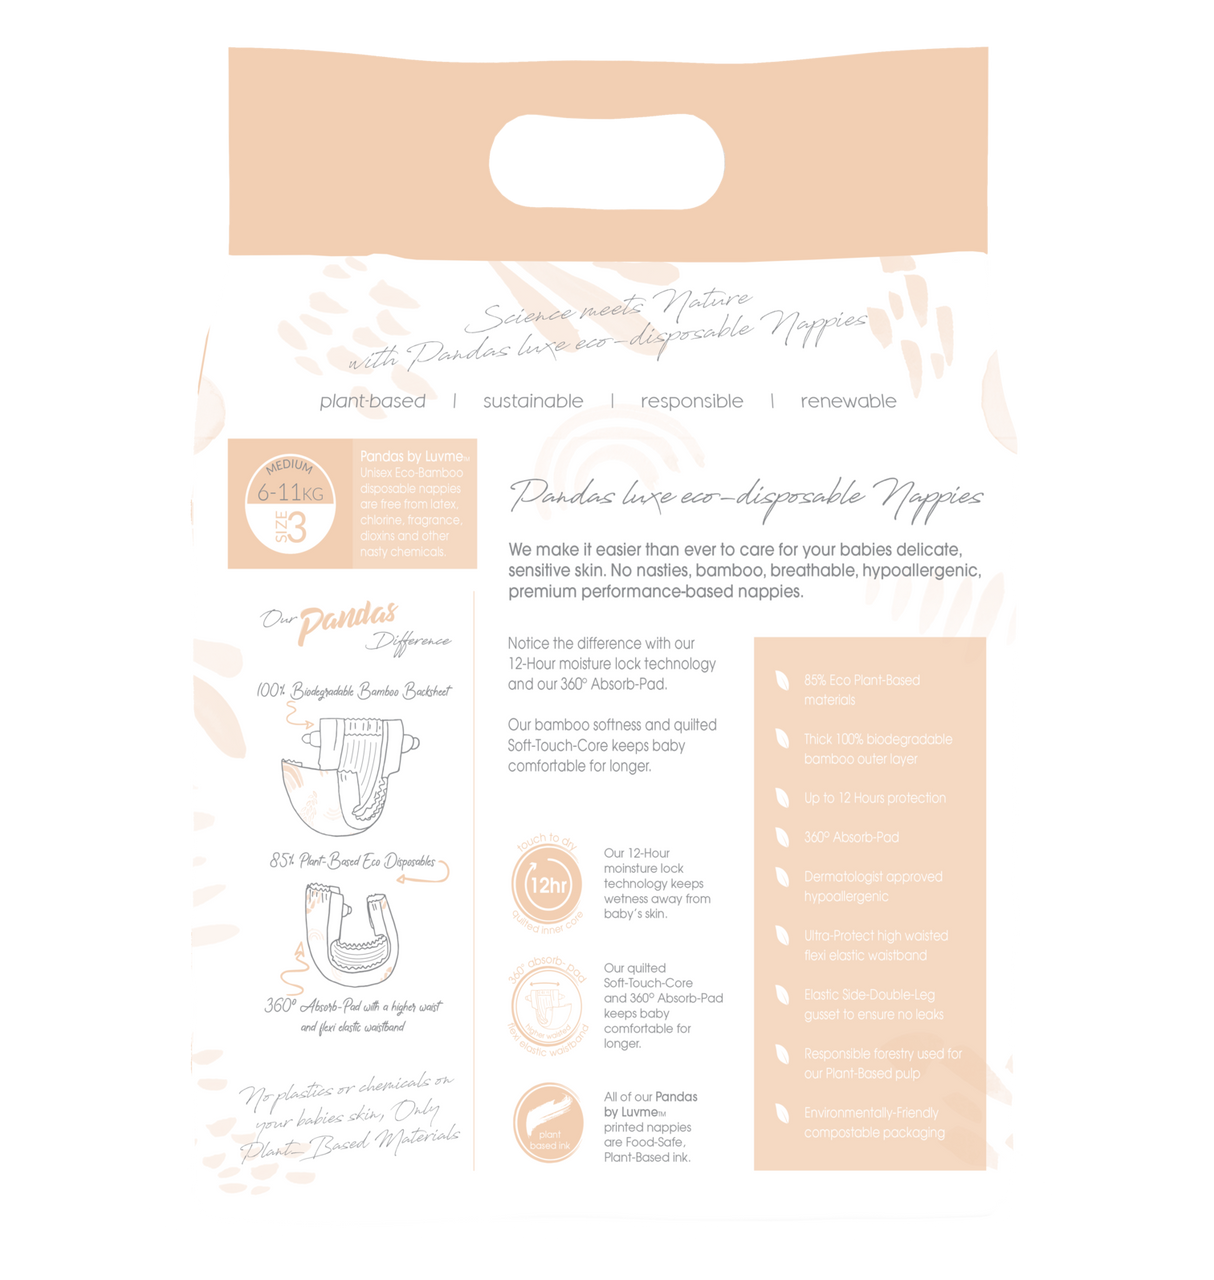 Pandas by Luvme Eco Disposable Nappies at Baby Barn Discounts Pandas are a plant based, biodegradable, compostable, ethical choice in nappies. A choice you will feel good about making for your bub and  for the planet.